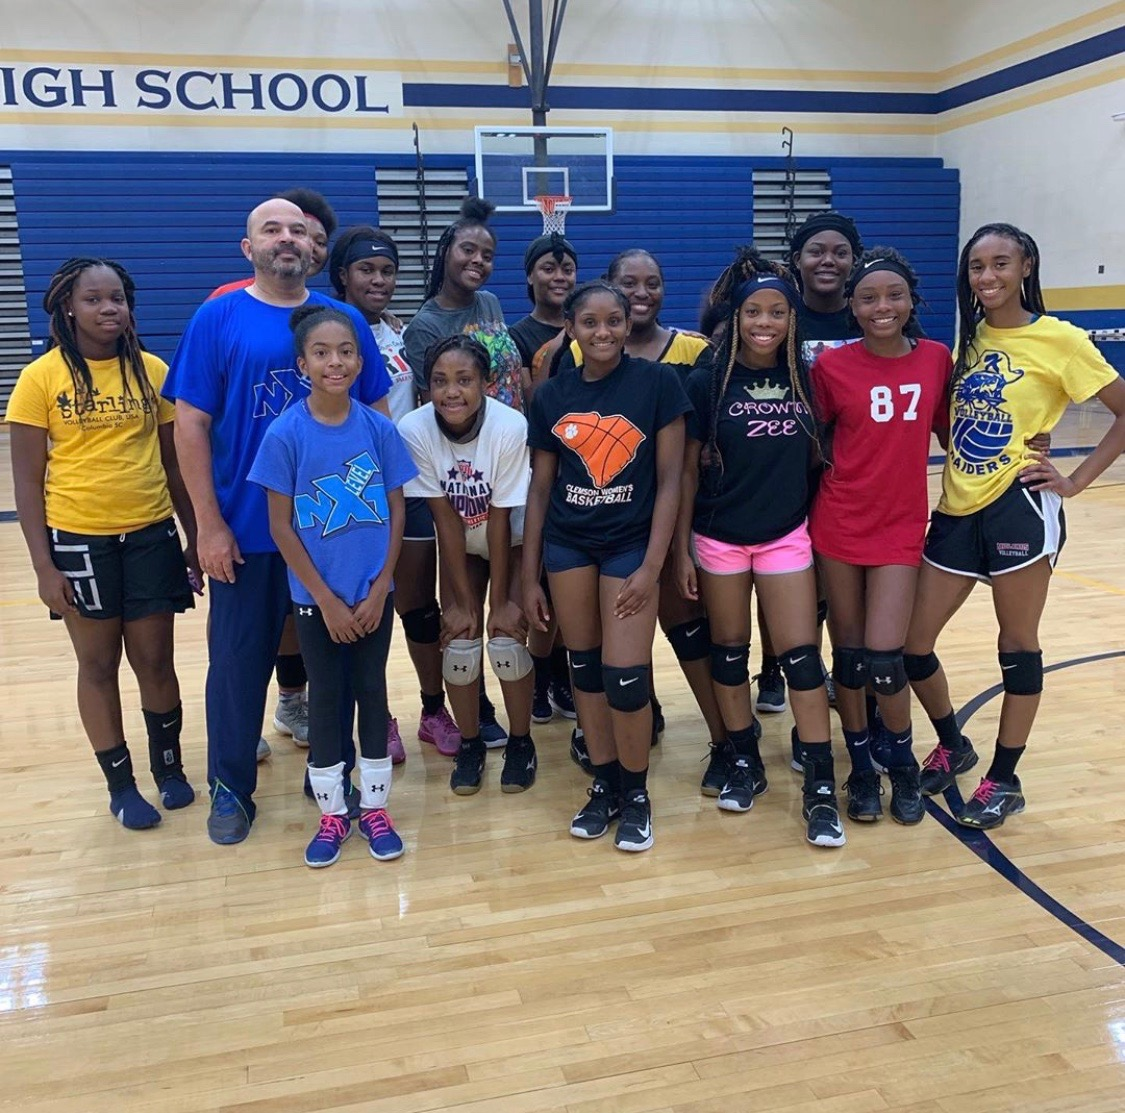 Volleyball Camp with Nxt Level Volleyball